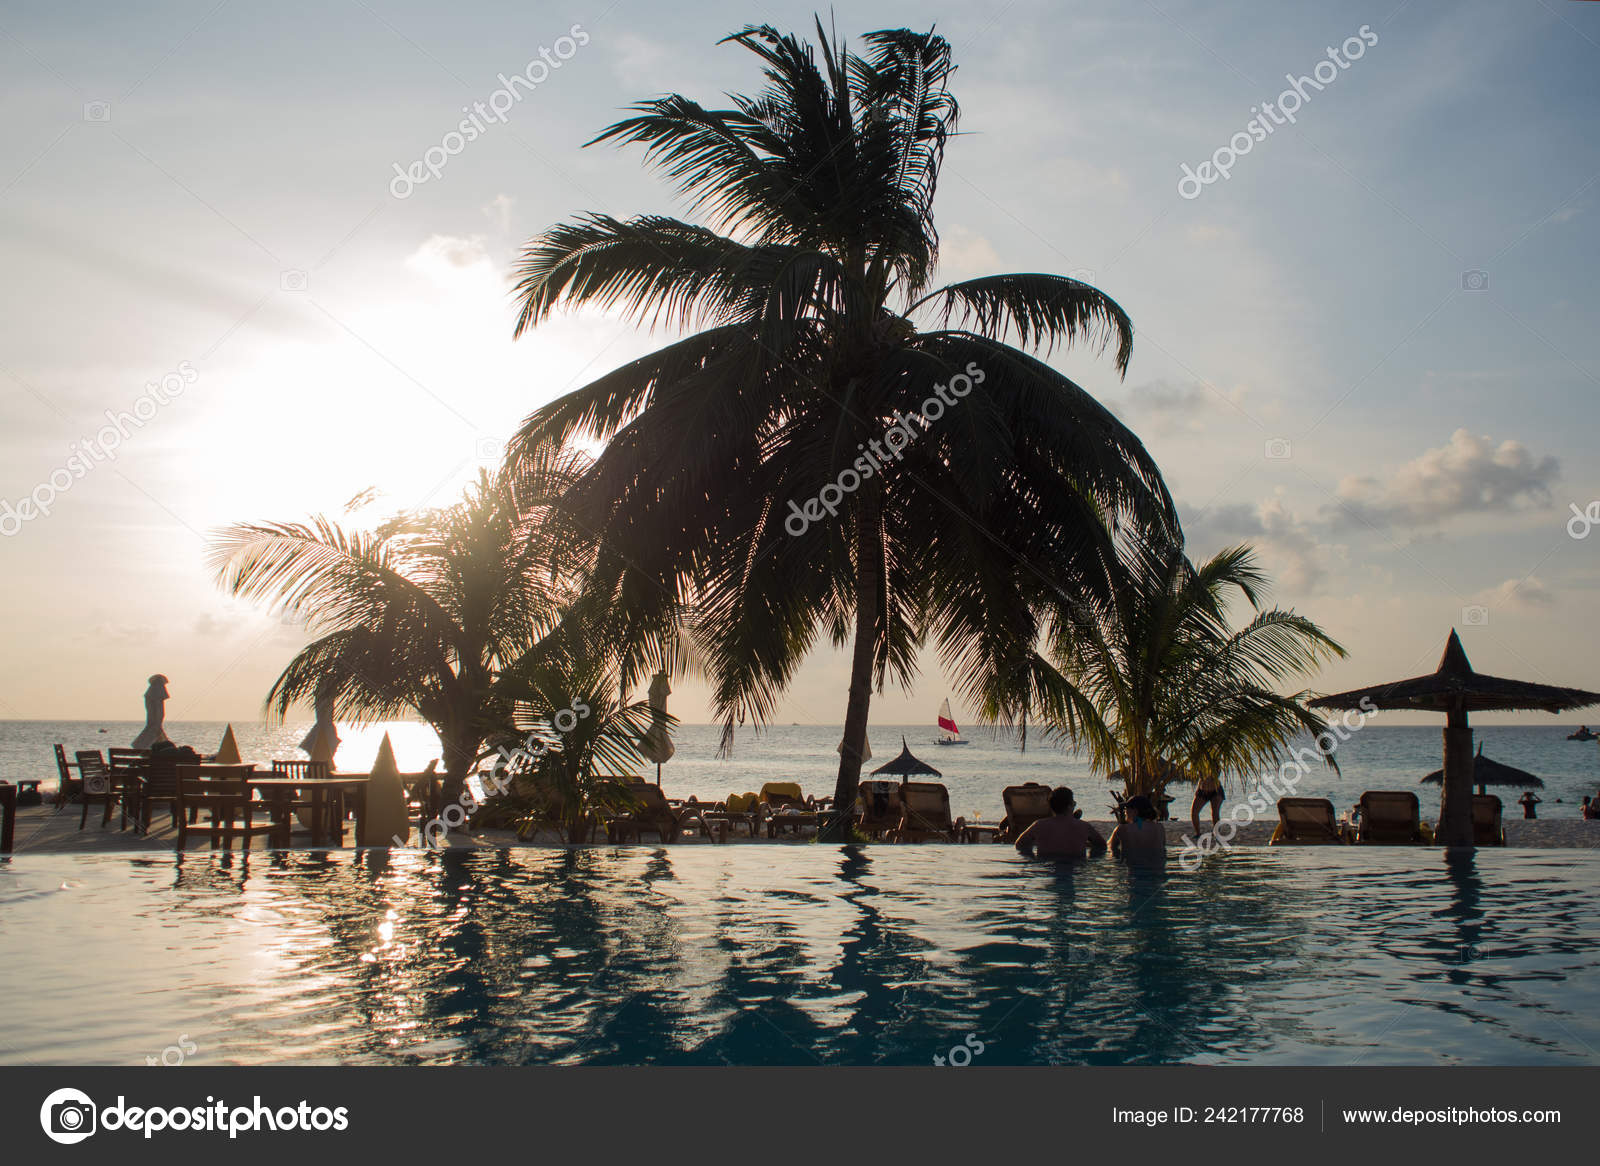 Blue Water In The Swimming Pool And Fluffy Palm Trees